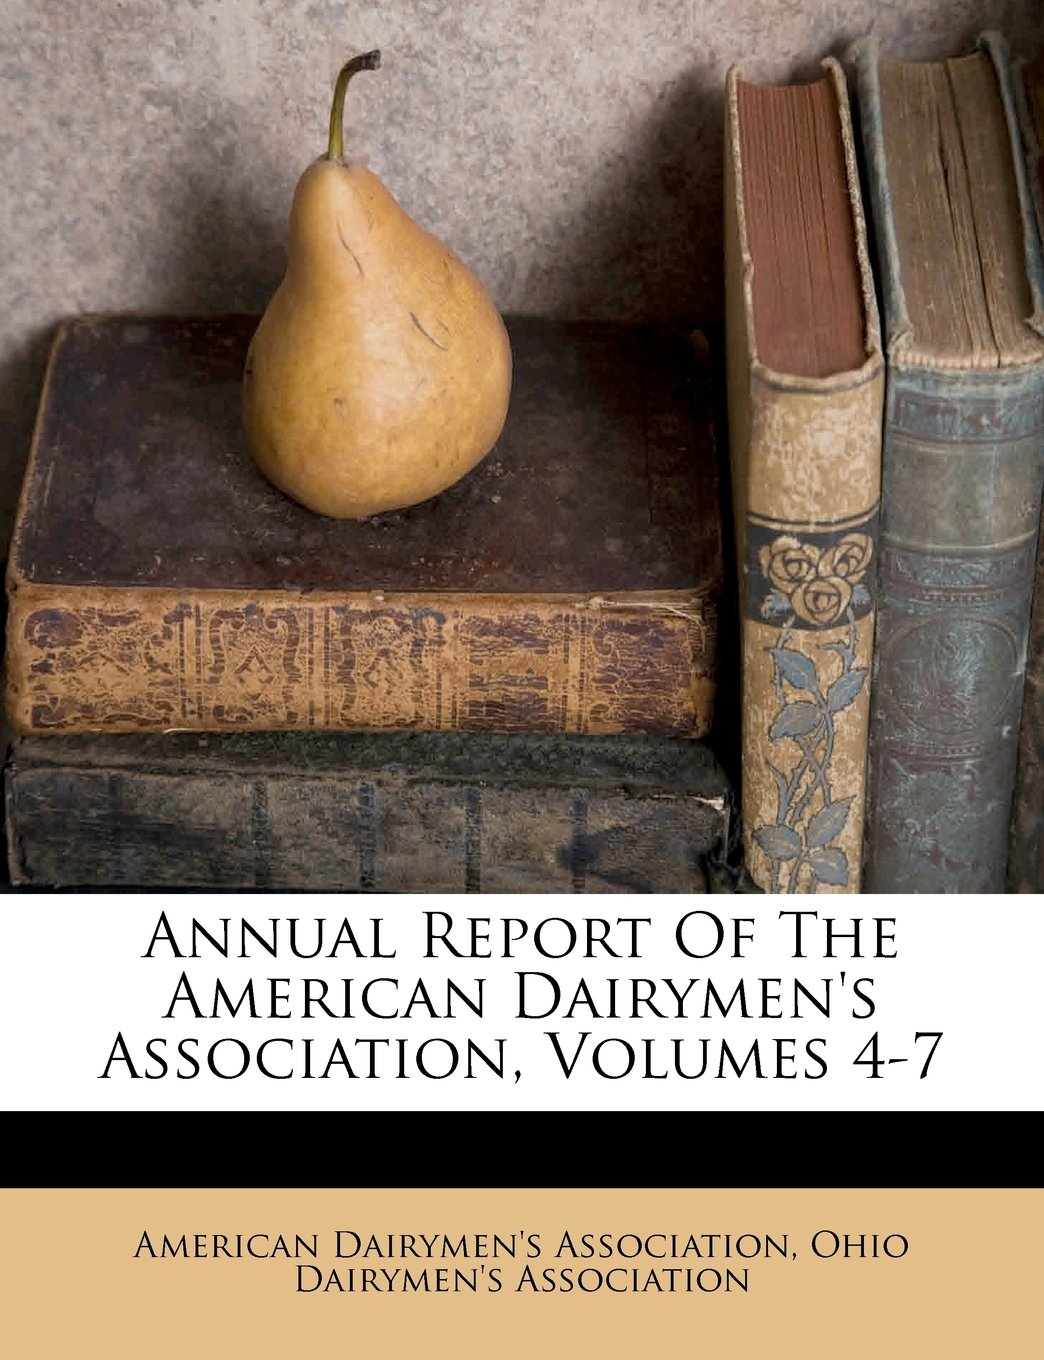 Download Annual Report Of The American Dairymen's Association, Volumes 4-7 pdf